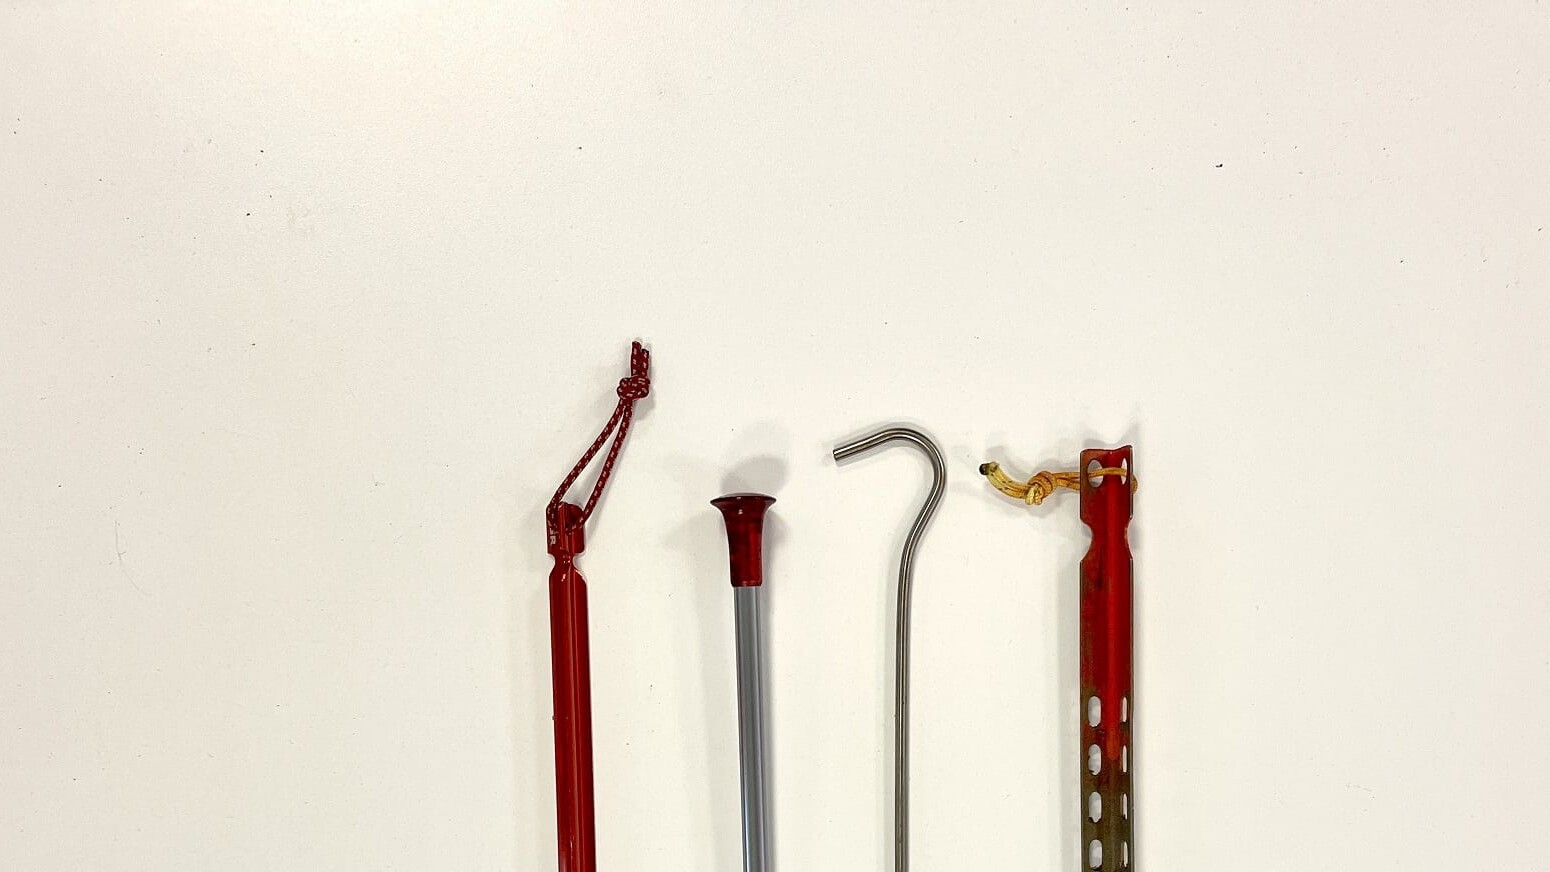 4 different common tent stakes